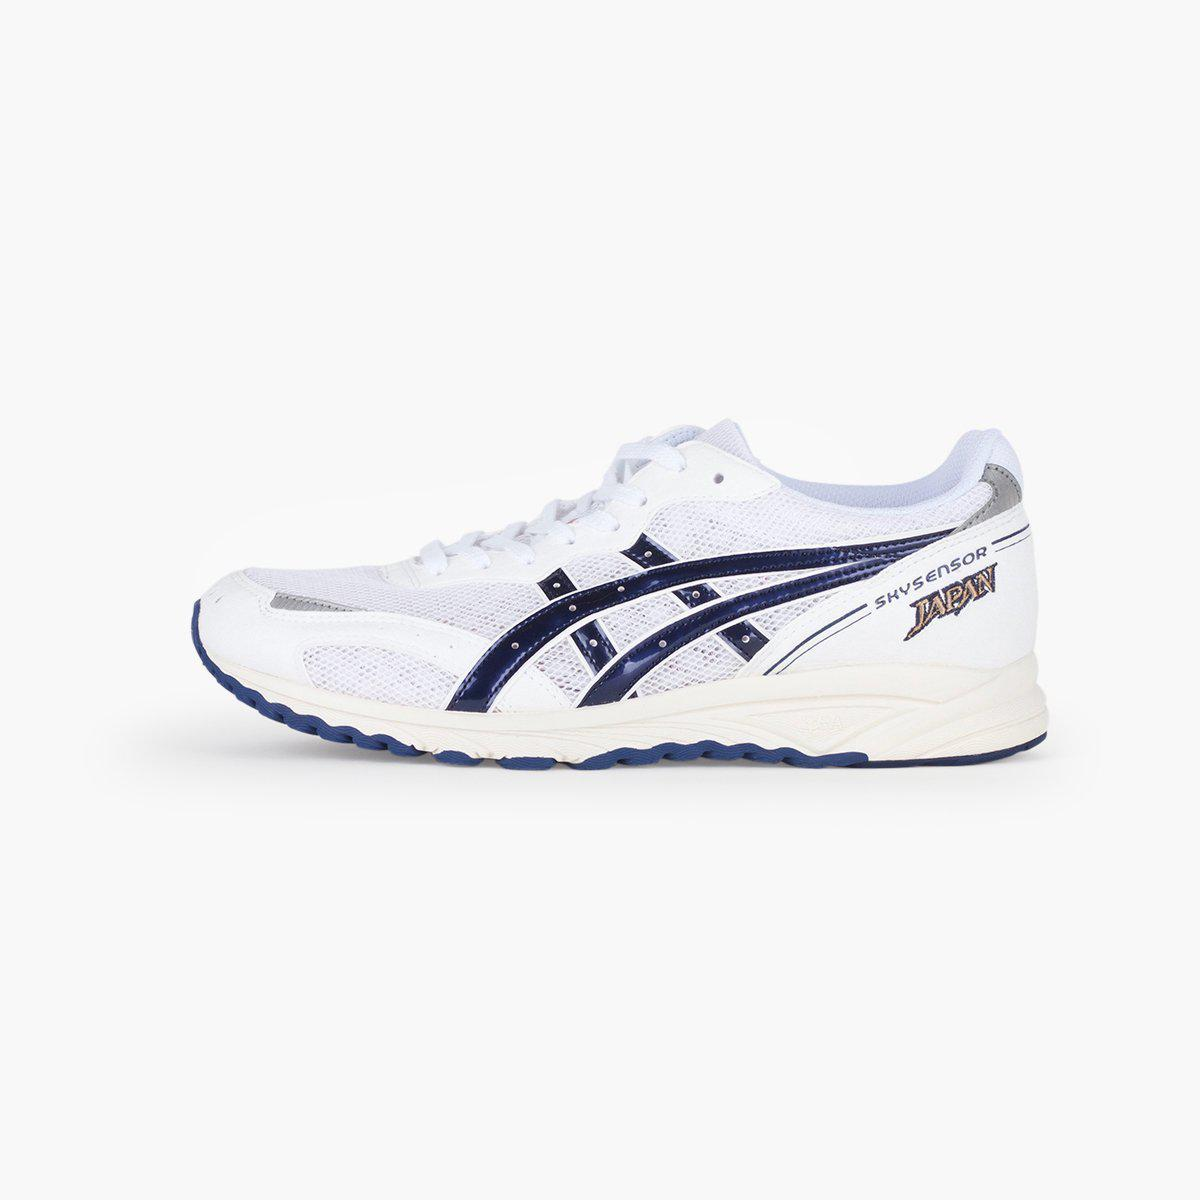 in stock 14a9c aa359 Asics Skysensor Japan for Men - Lyst